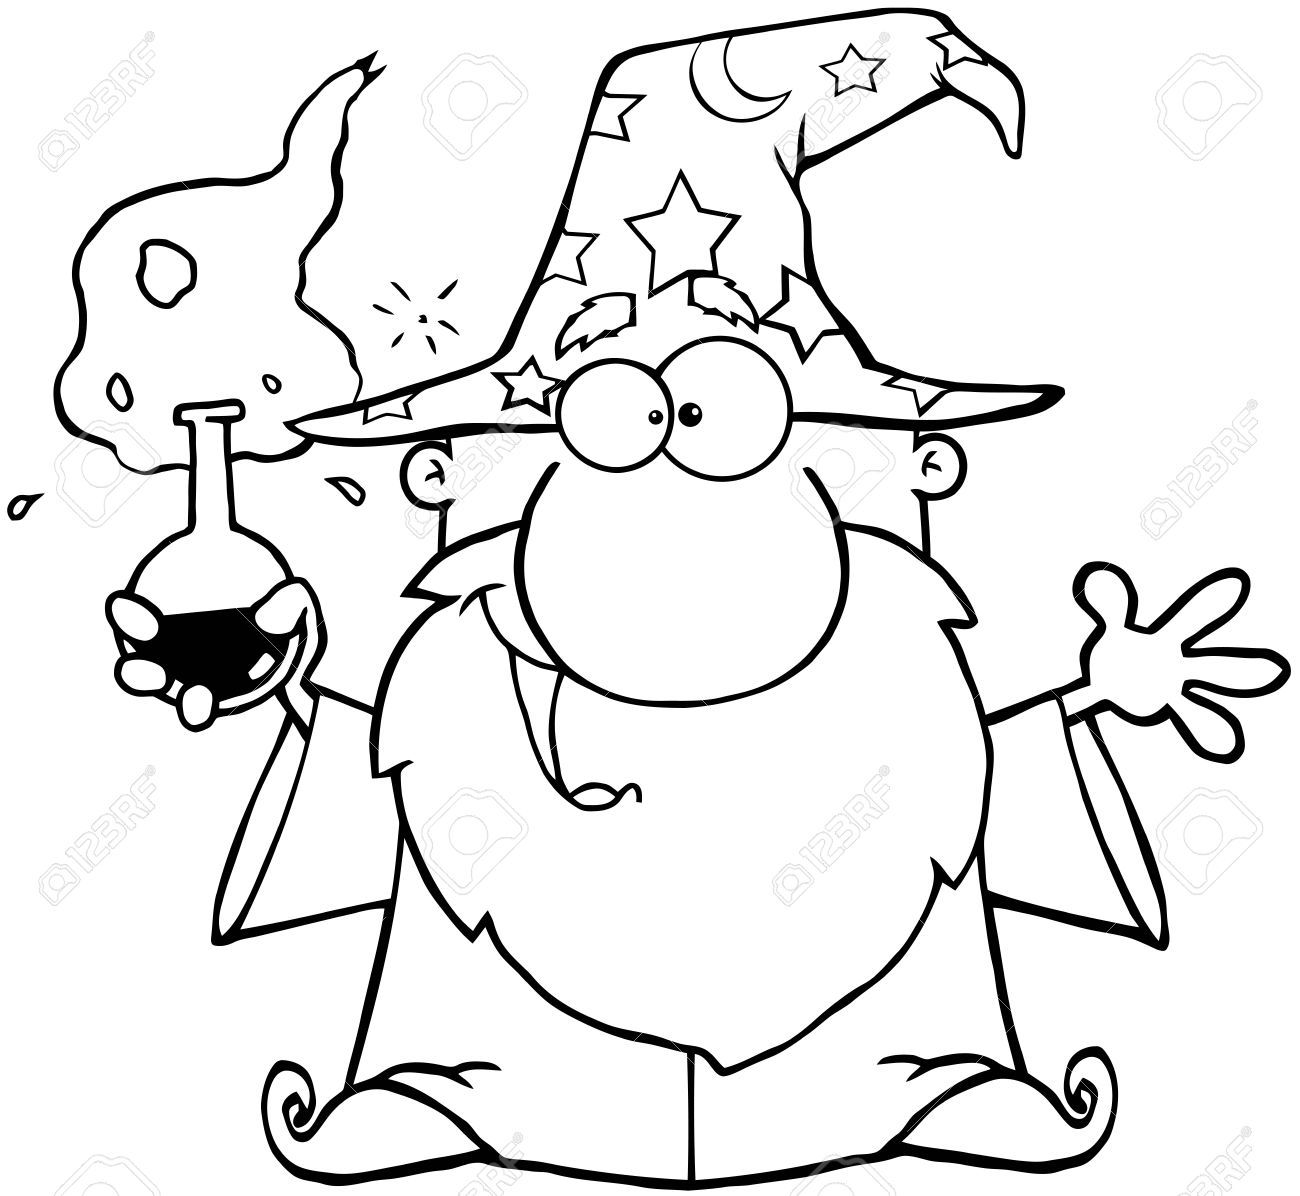 Wizard clipart black and white 8 » Clipart Portal.